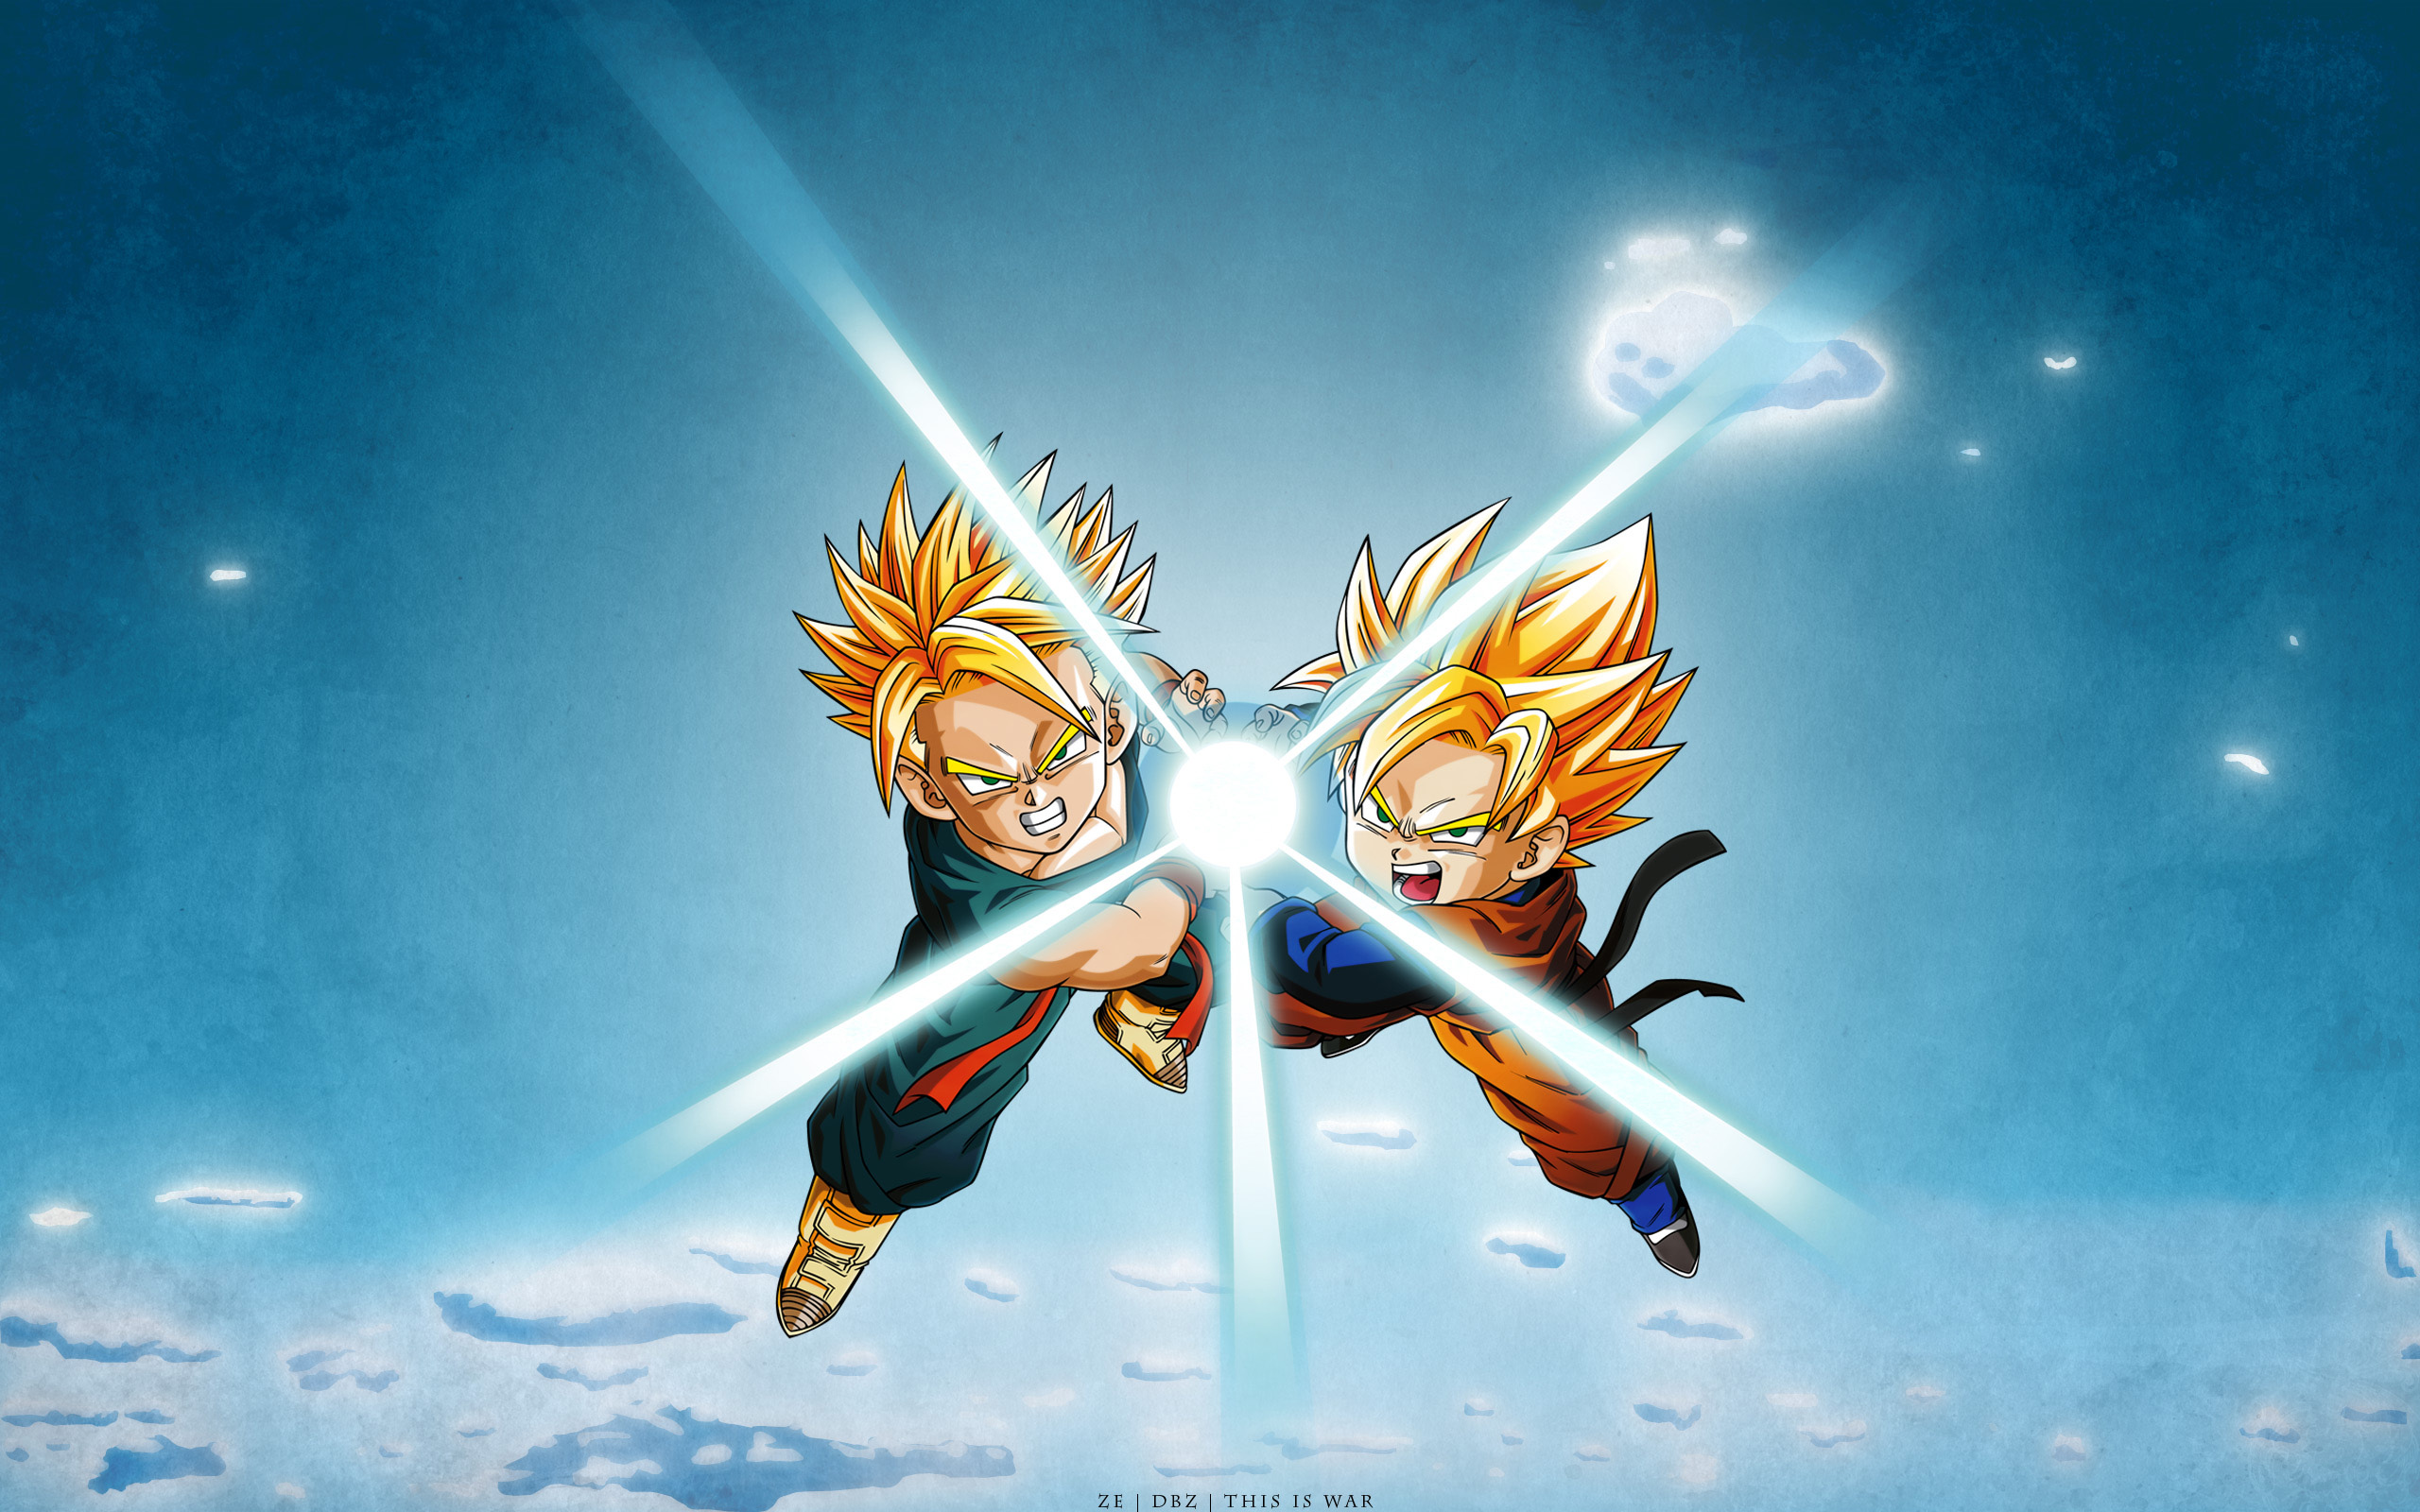 Dragon Ball Z Teamwork Wallpapers Dragon Ball Z Teamwork Myspace 2560x1600